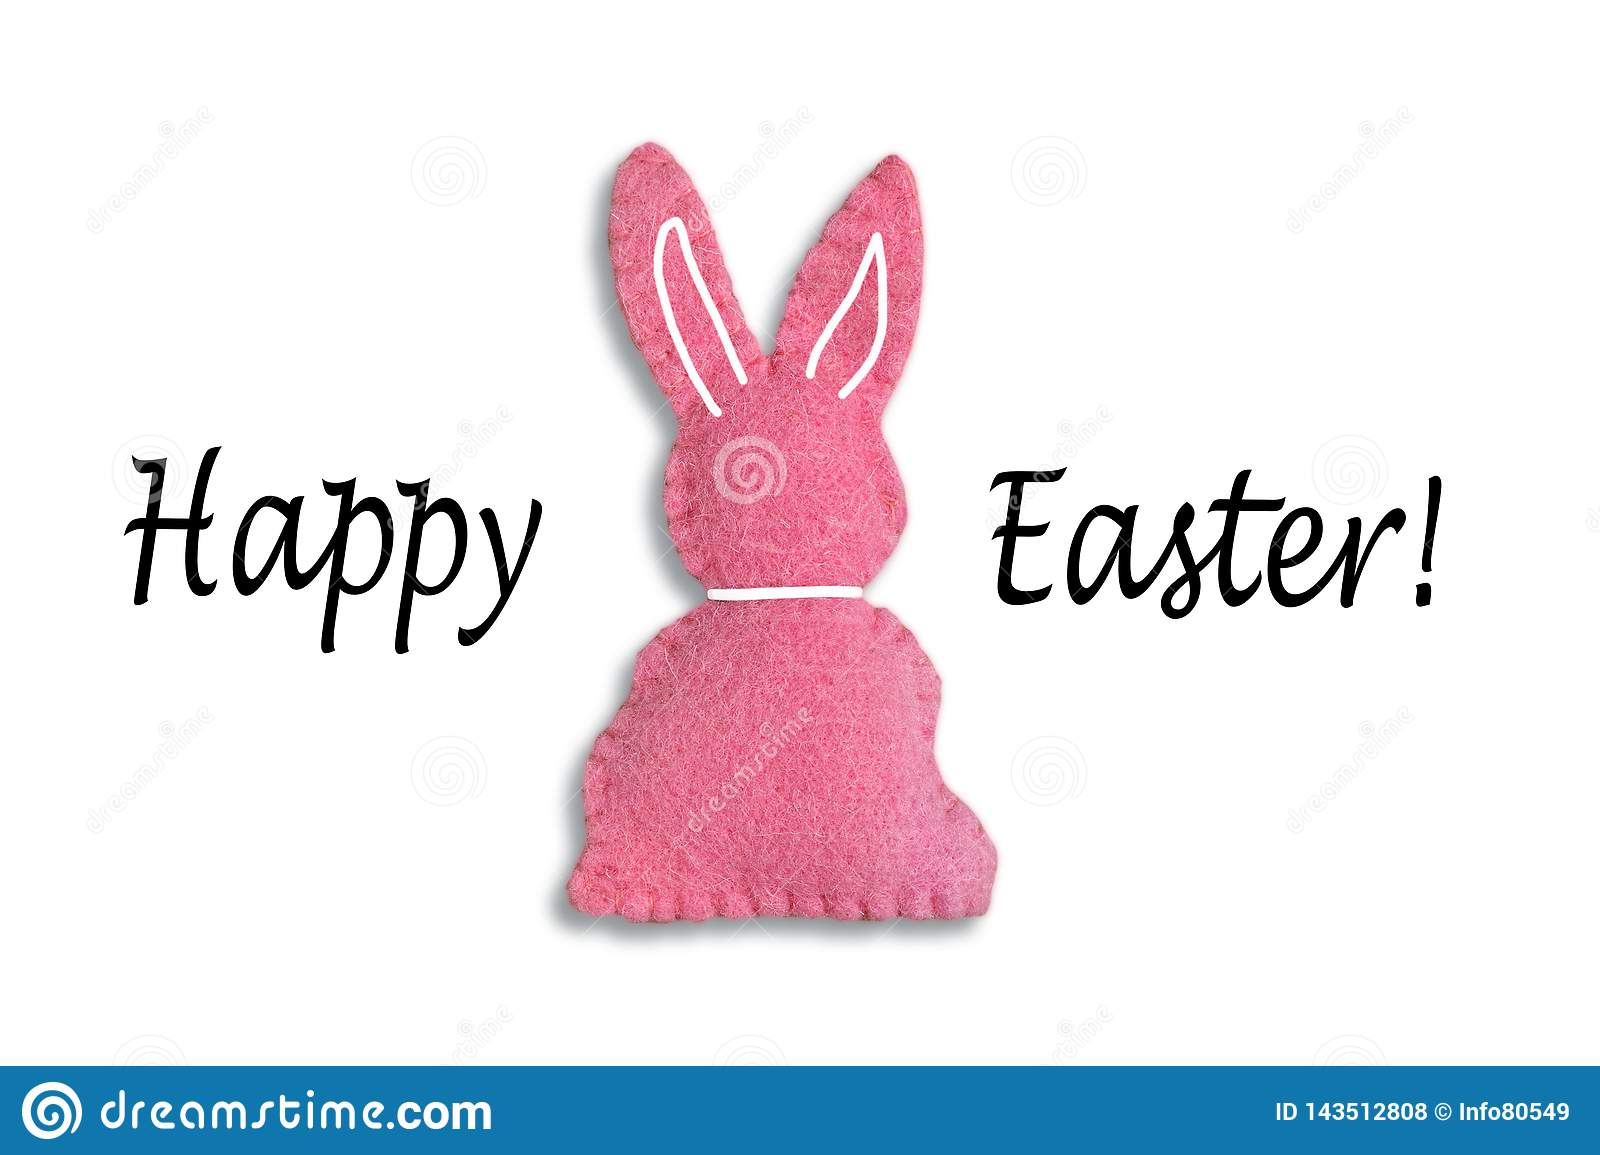 Pink Easter bunny with text `Happy Easter` and a white background.